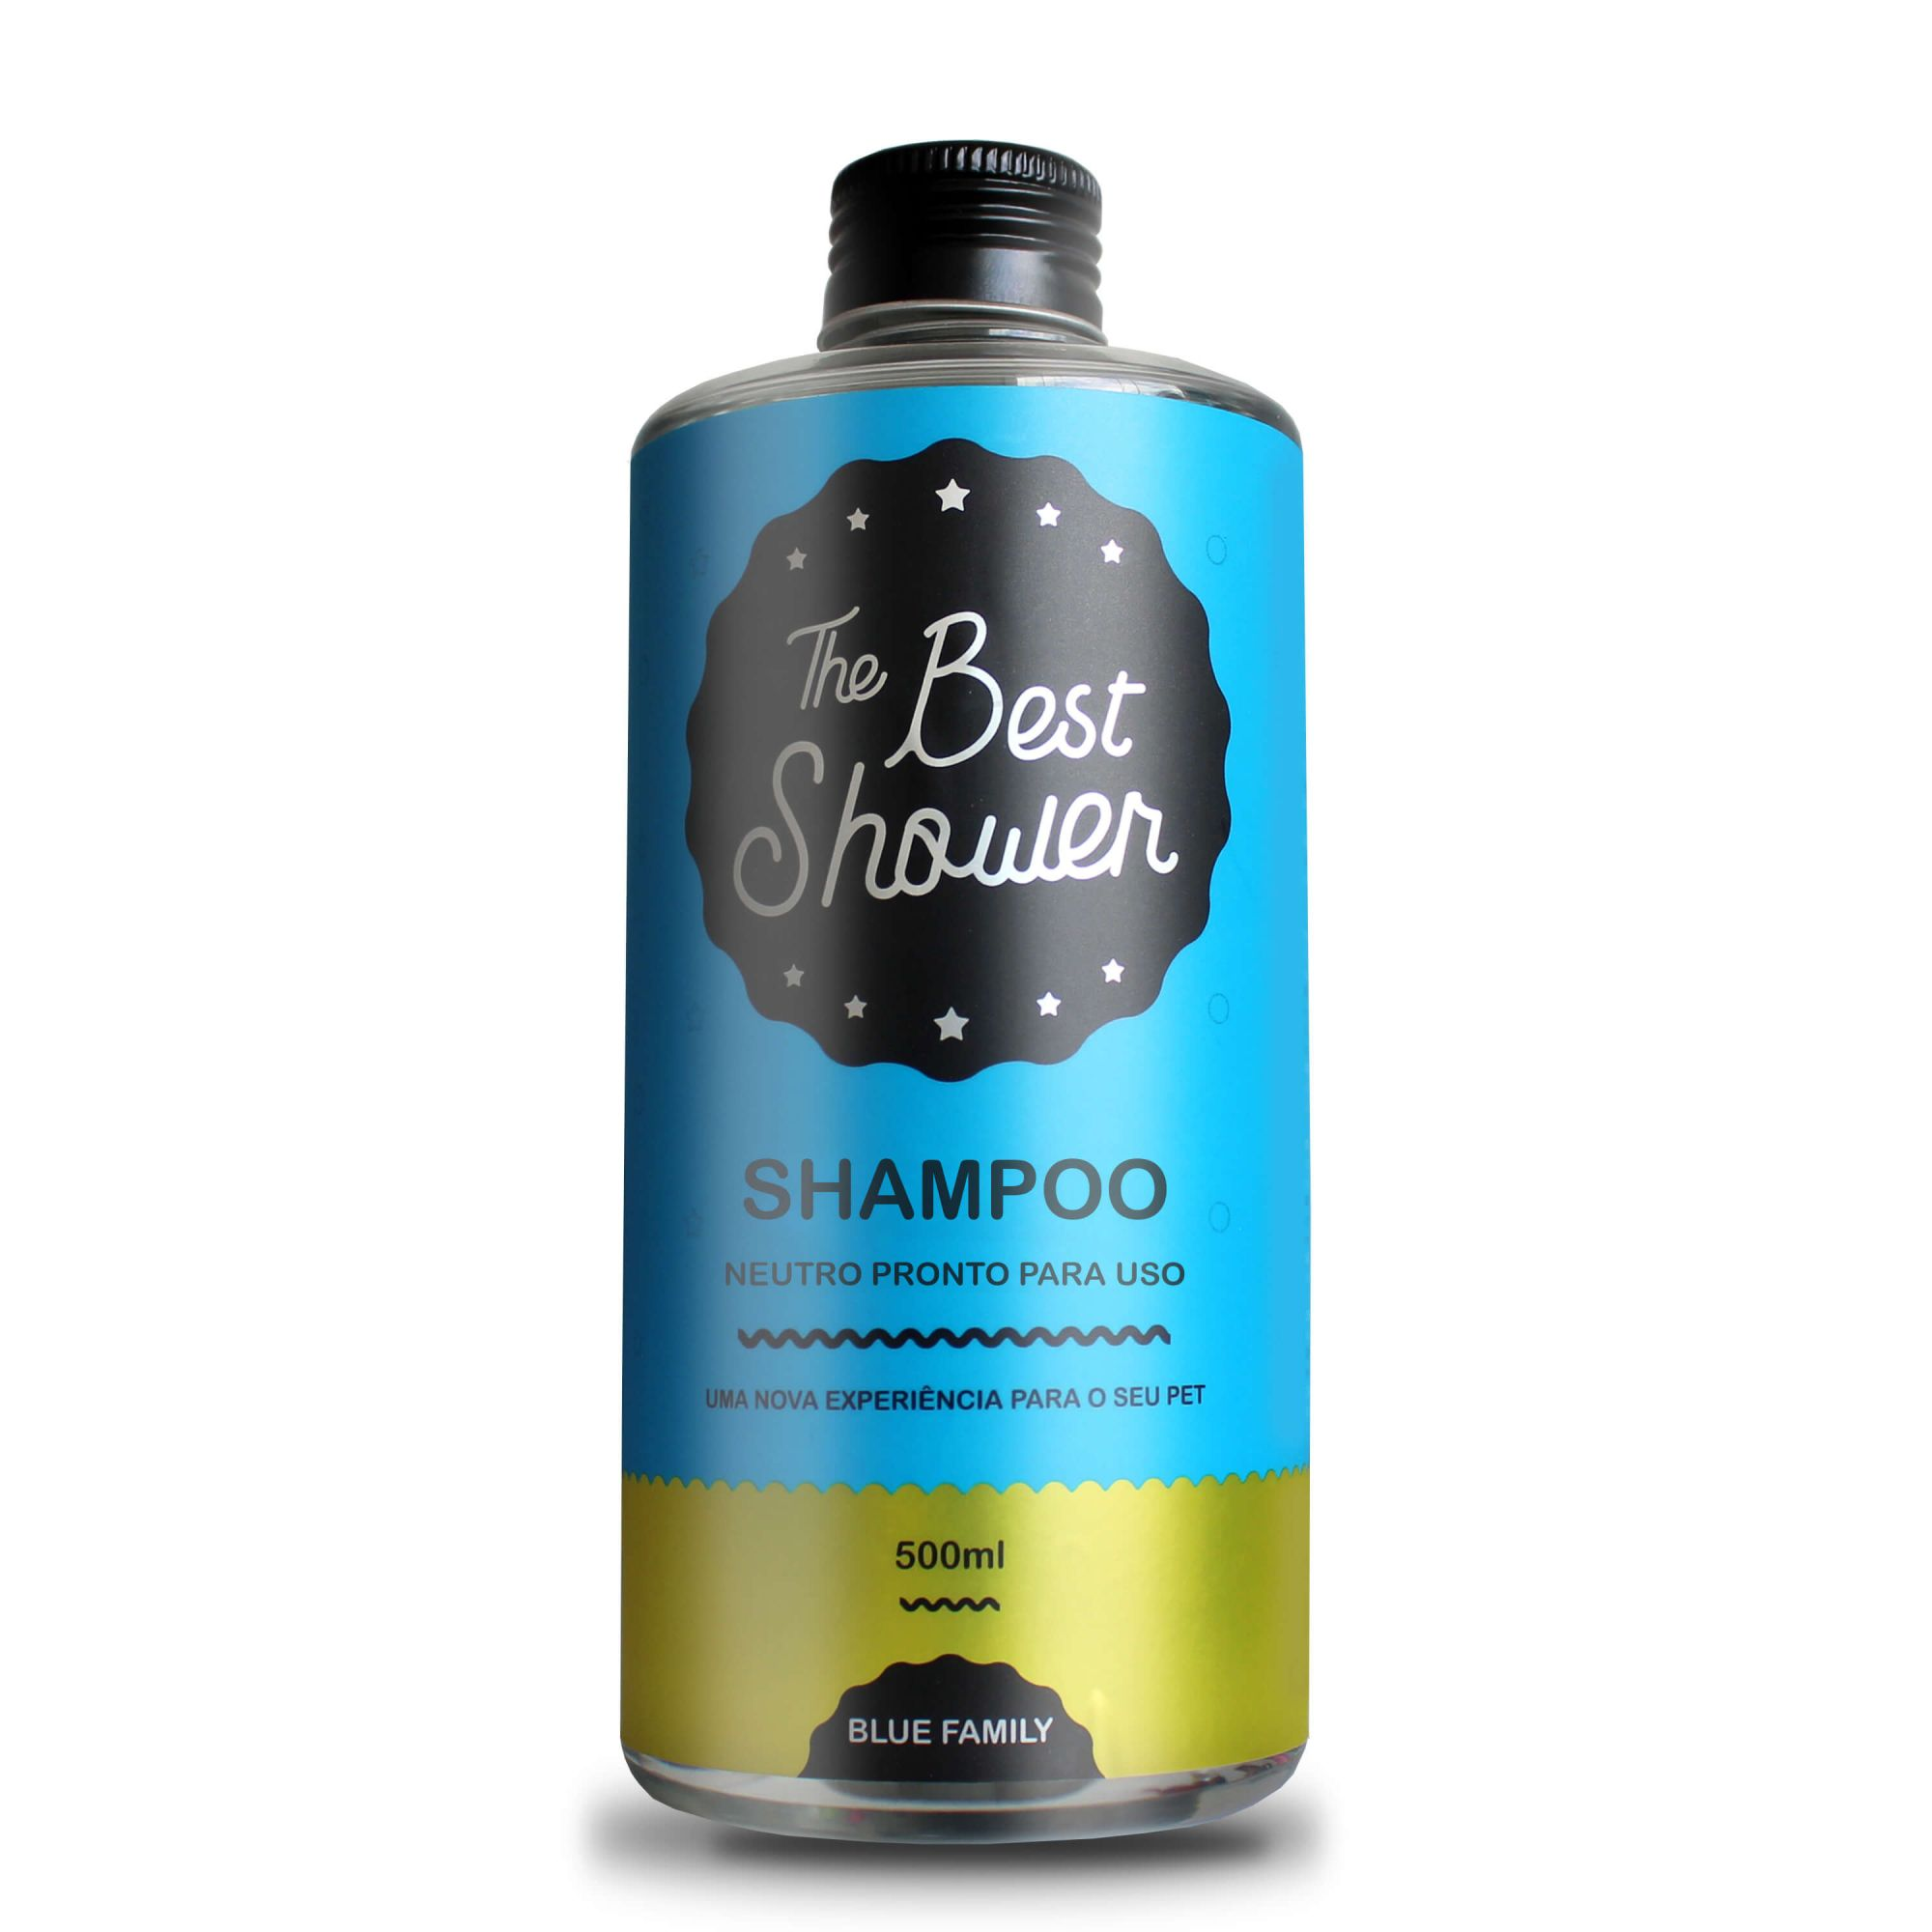 Shampoo The Best Shower - 500 mL